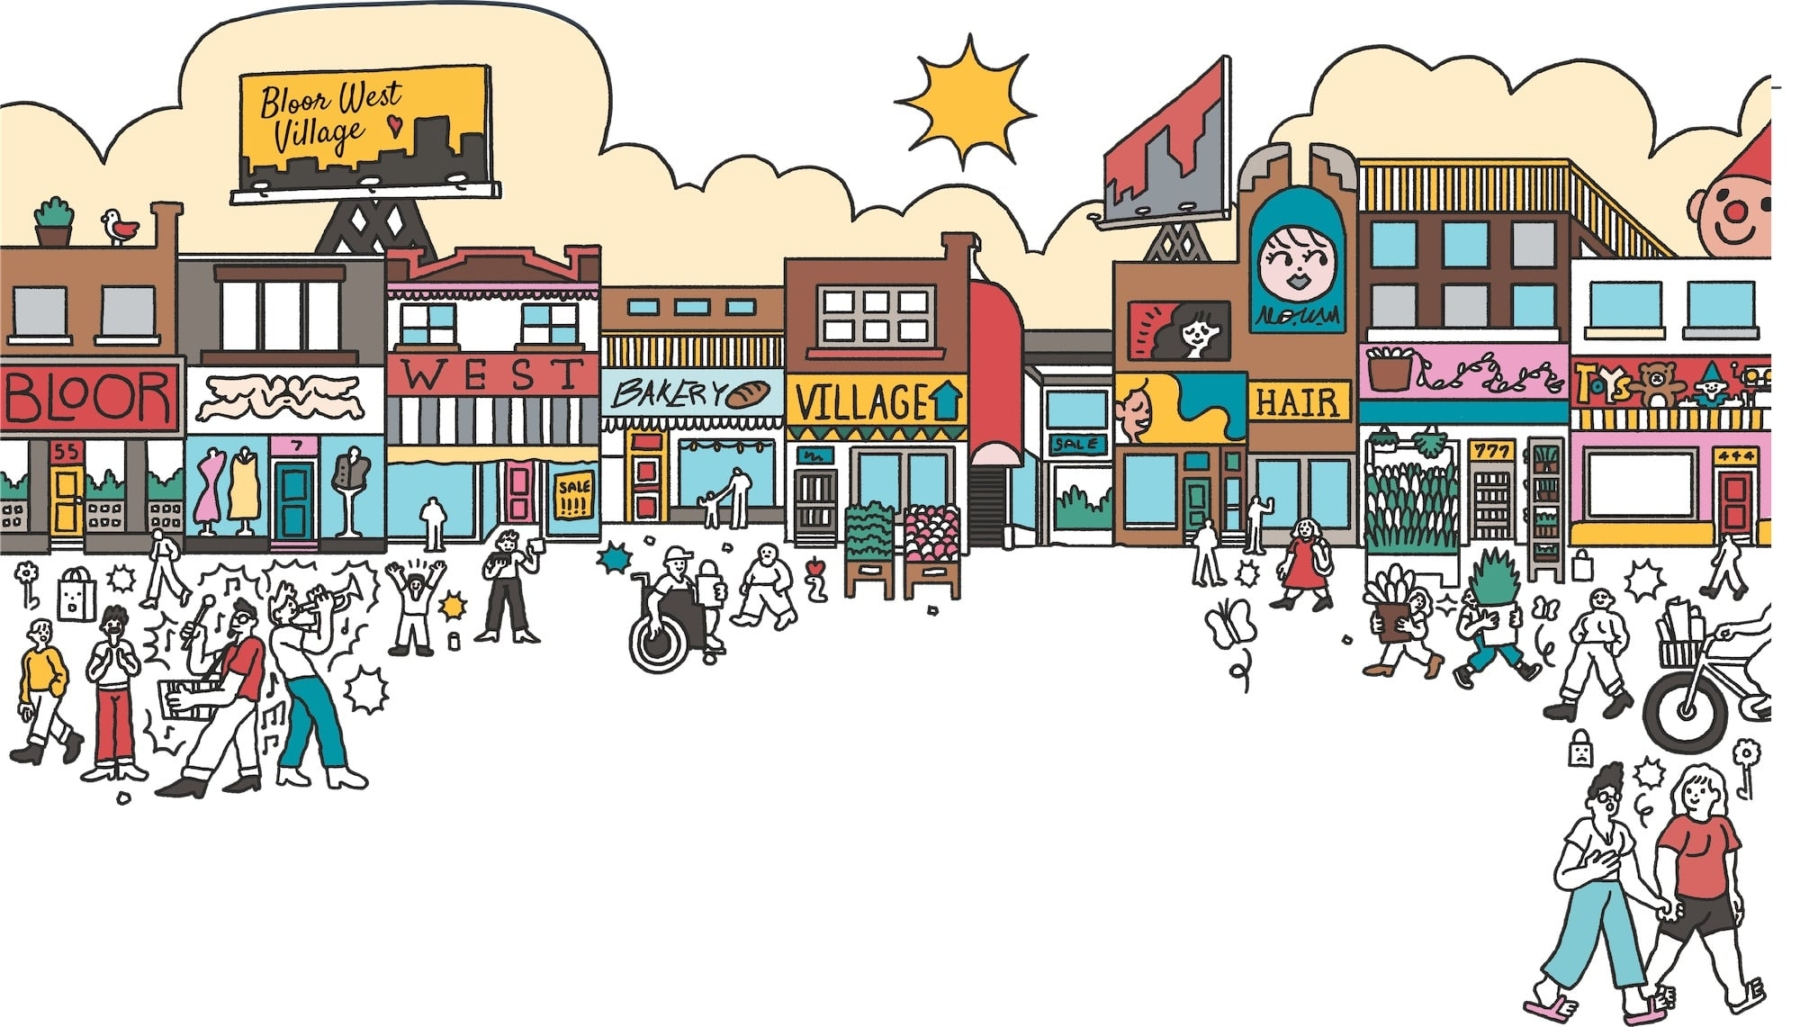 Illustration of Southport in Swansea Bloor West